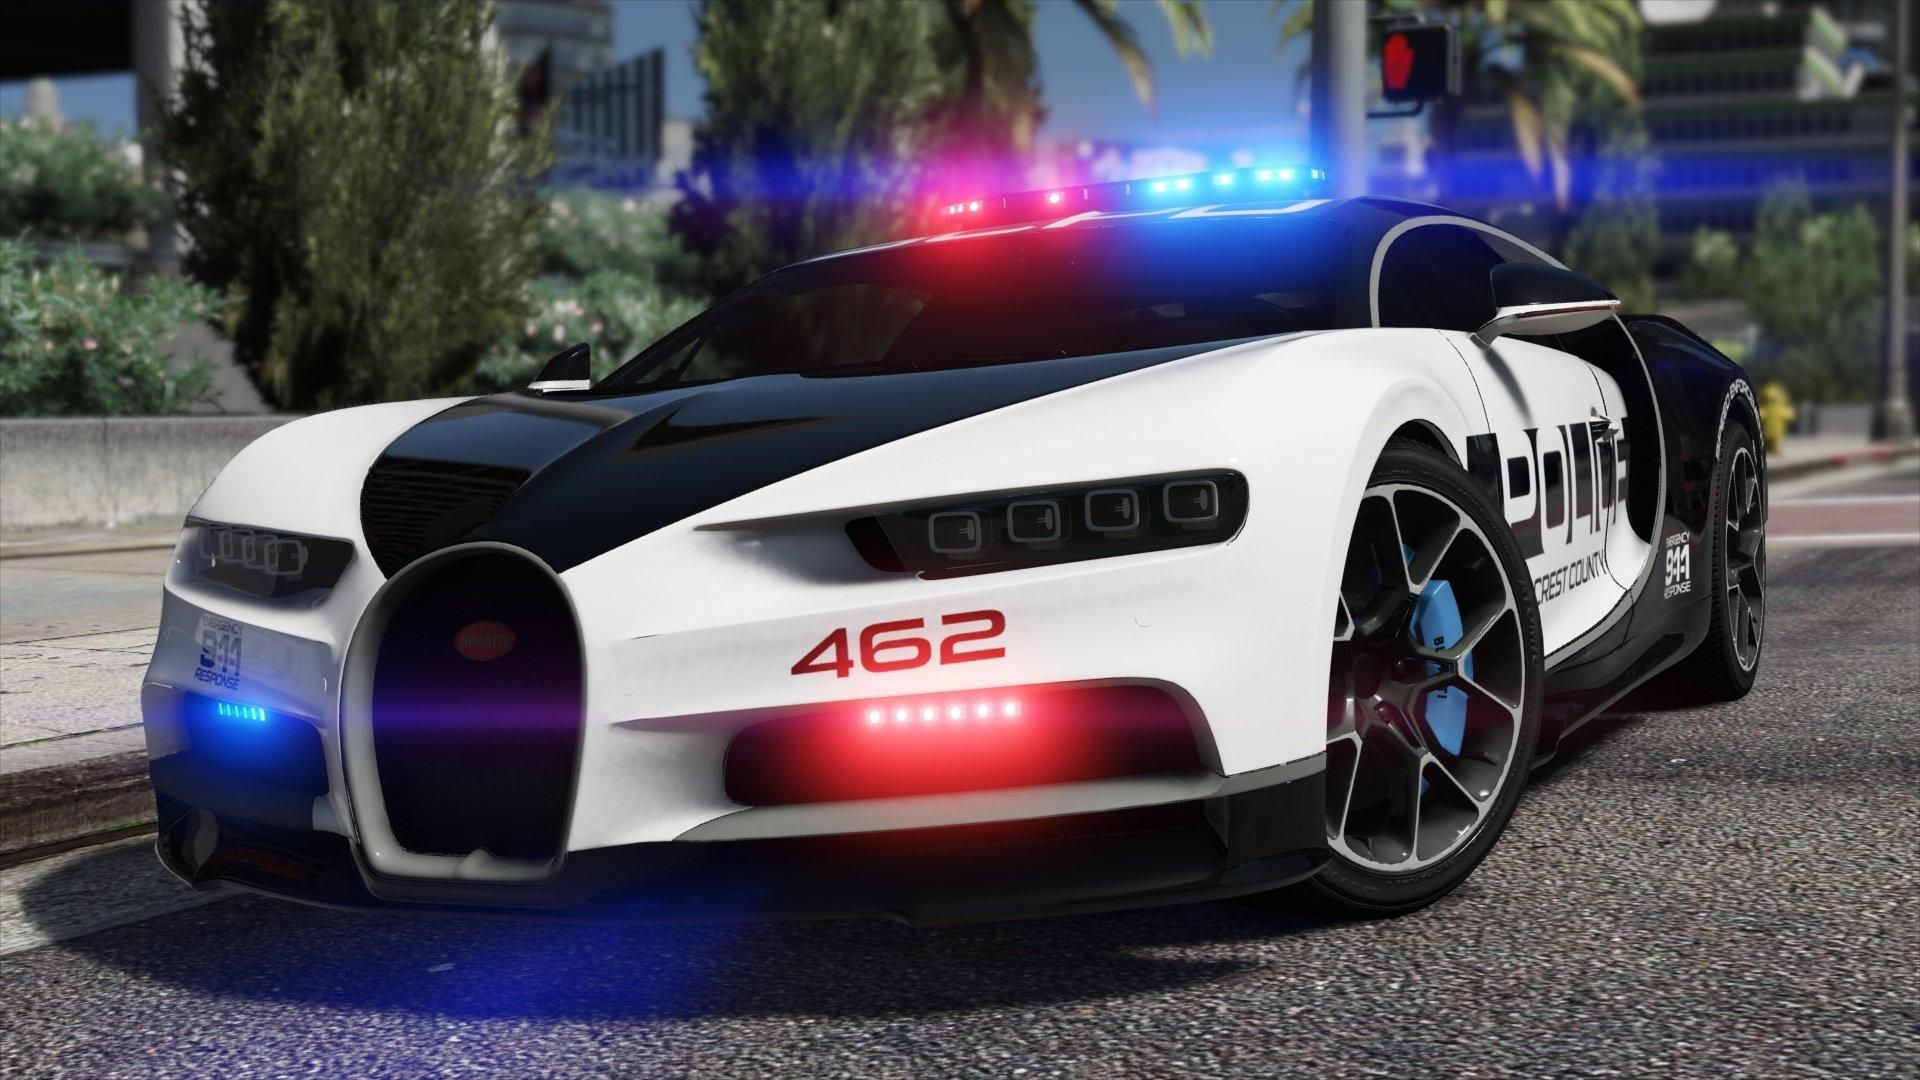 Add A Bugatti Chiron Of Need For Speed Hot Pursuit Police In Gta V Imagined By Me Or Replace Police Buffalo In 2020 Police Cars Super Car Bugatti Bugatti Chiron